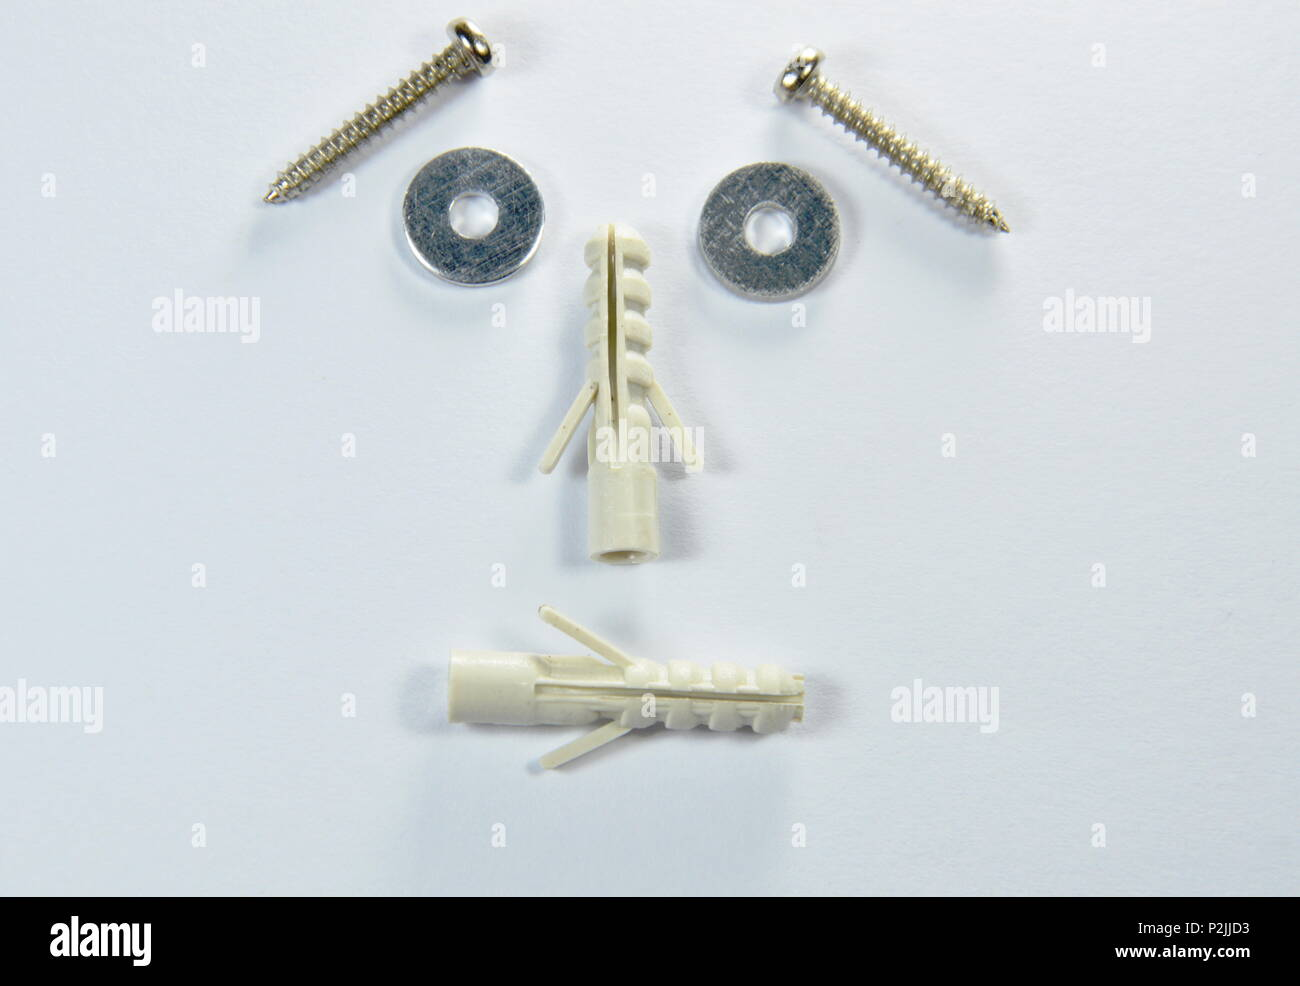 screw nut alignment worry face - Stock Image